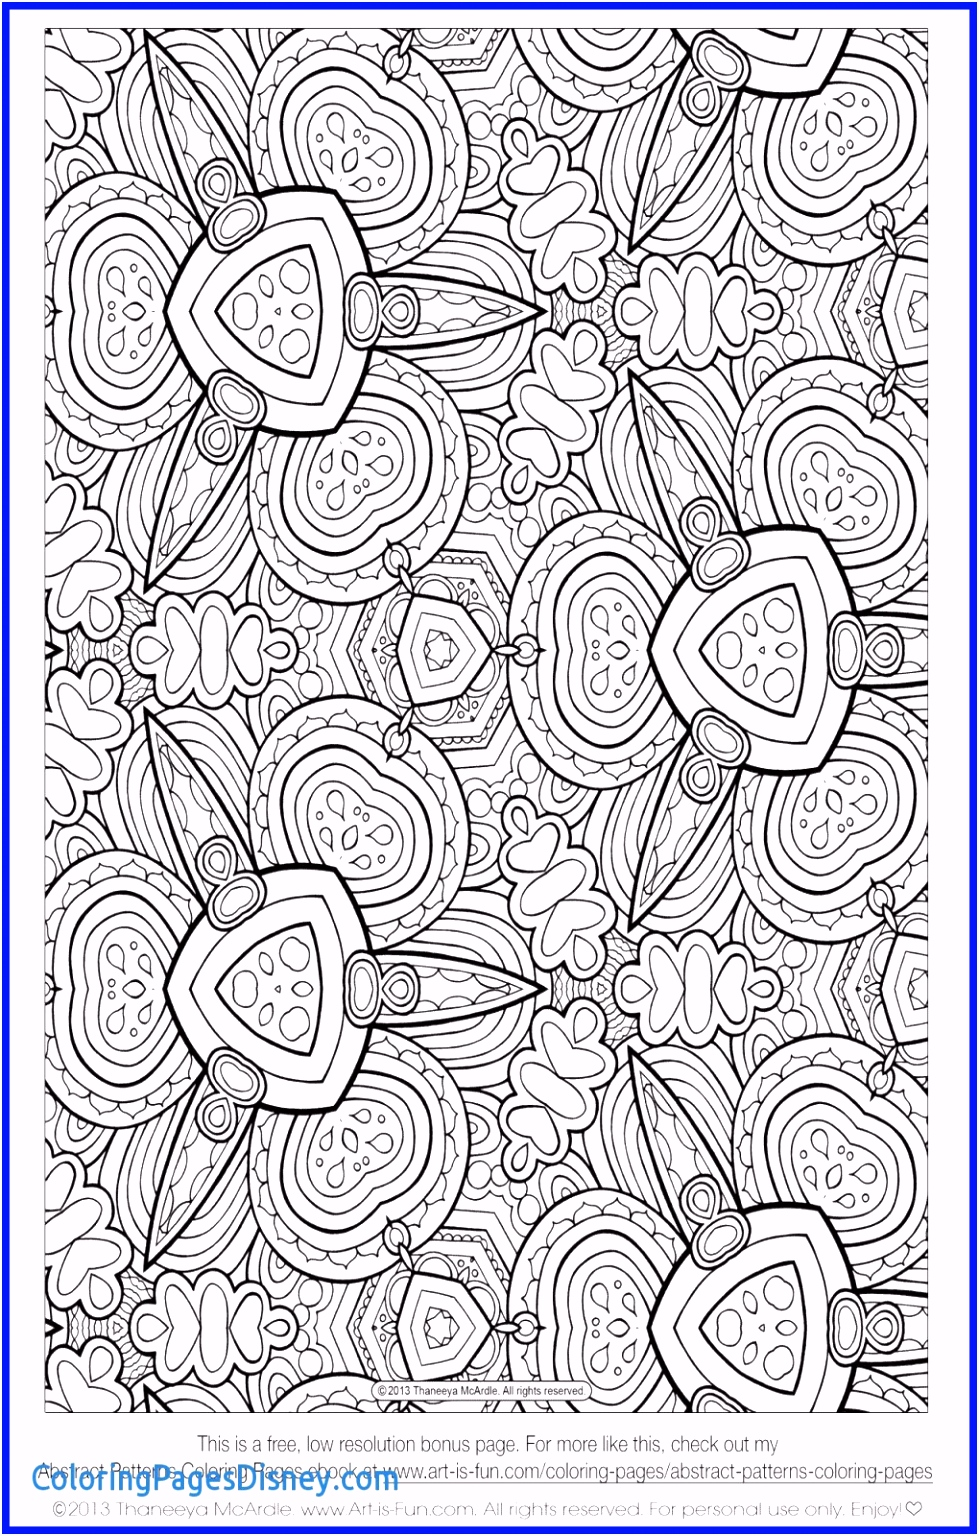 Coloring Games for Adults Free Fun Things to Color